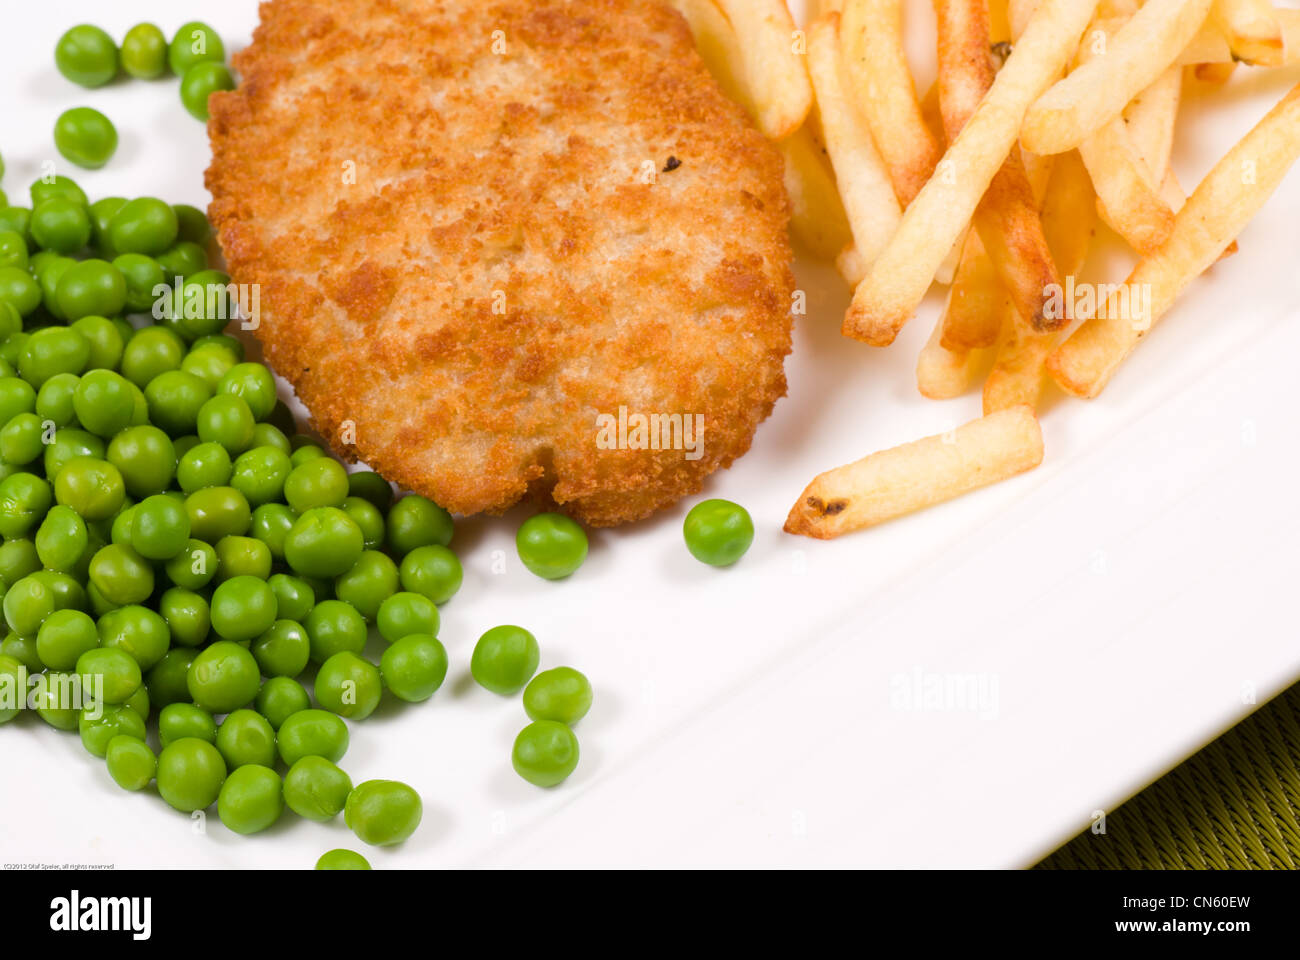 Breaded cod served with peas and fries - Stock Image